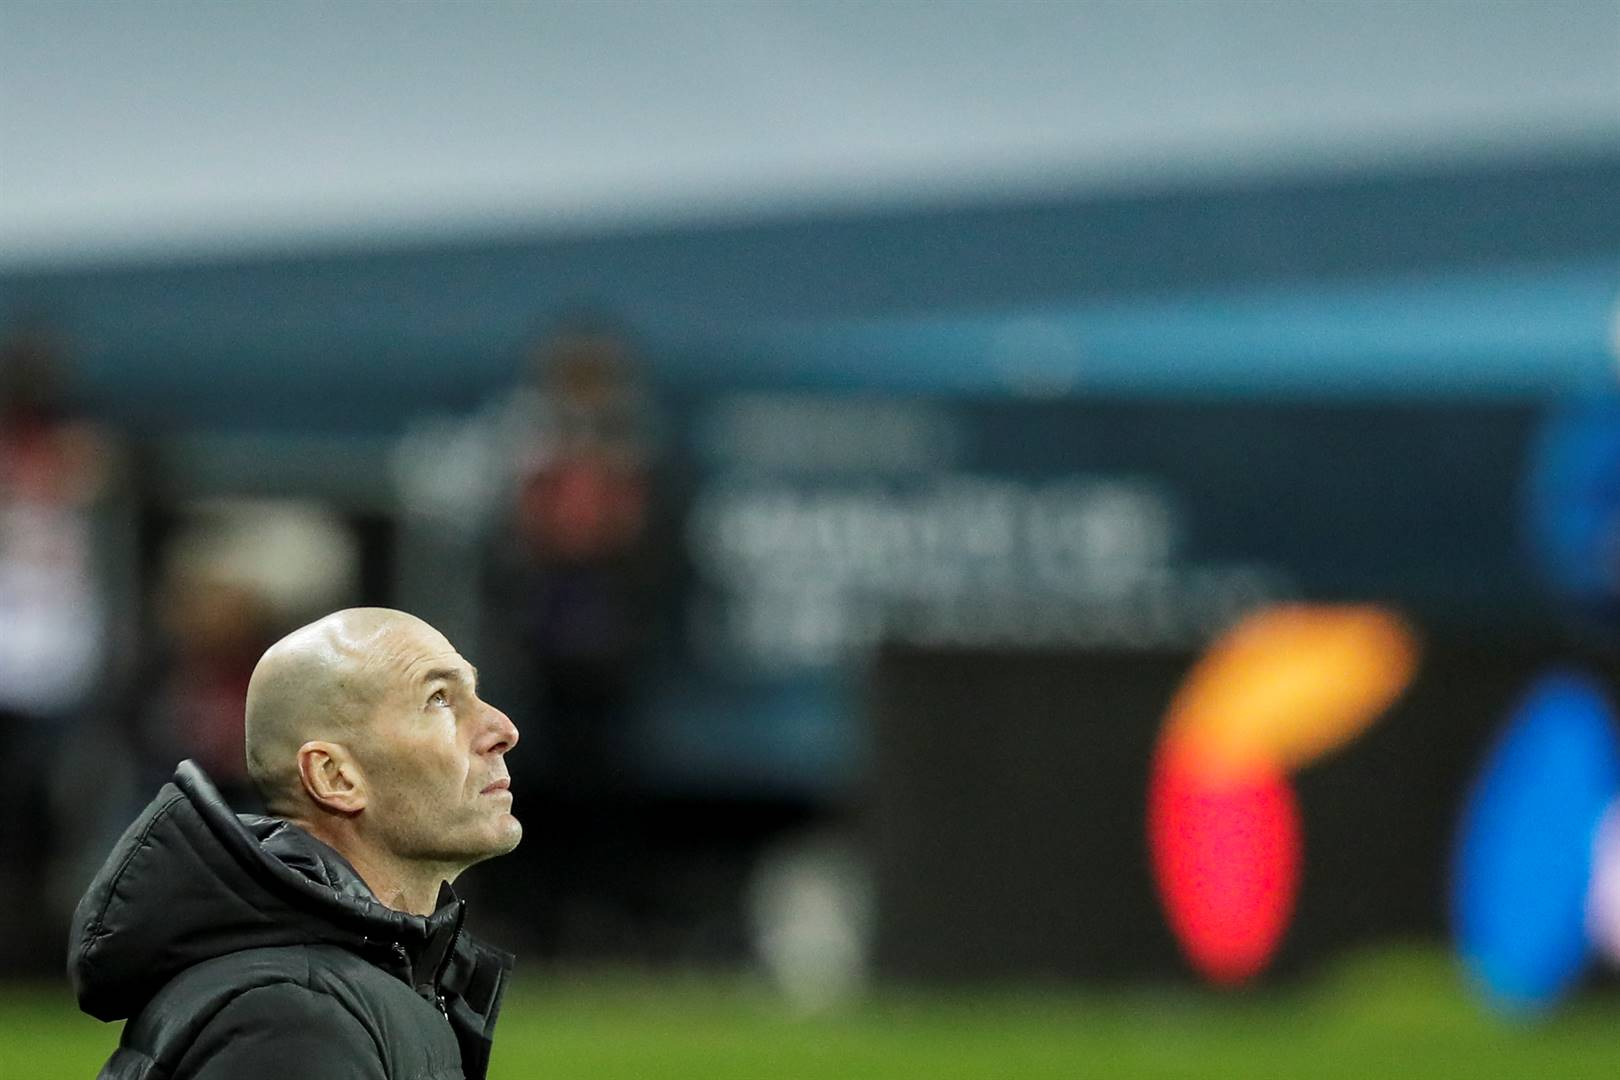 Real Madrid coach Zinedine Zidane will look to cut the gap at the top of LaLiga to put the pressure on rivals Atlético MadridPicture: David S. Bustamante / Getty Images